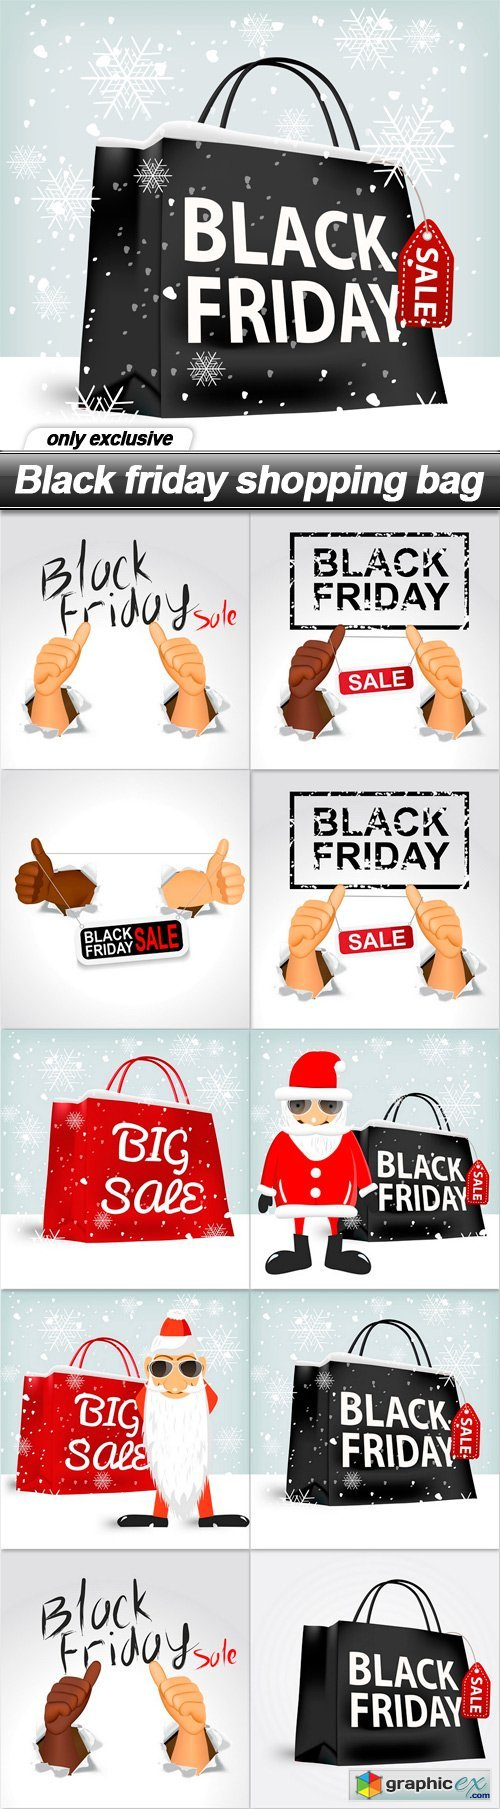 Black friday shopping bag - 10 EPS